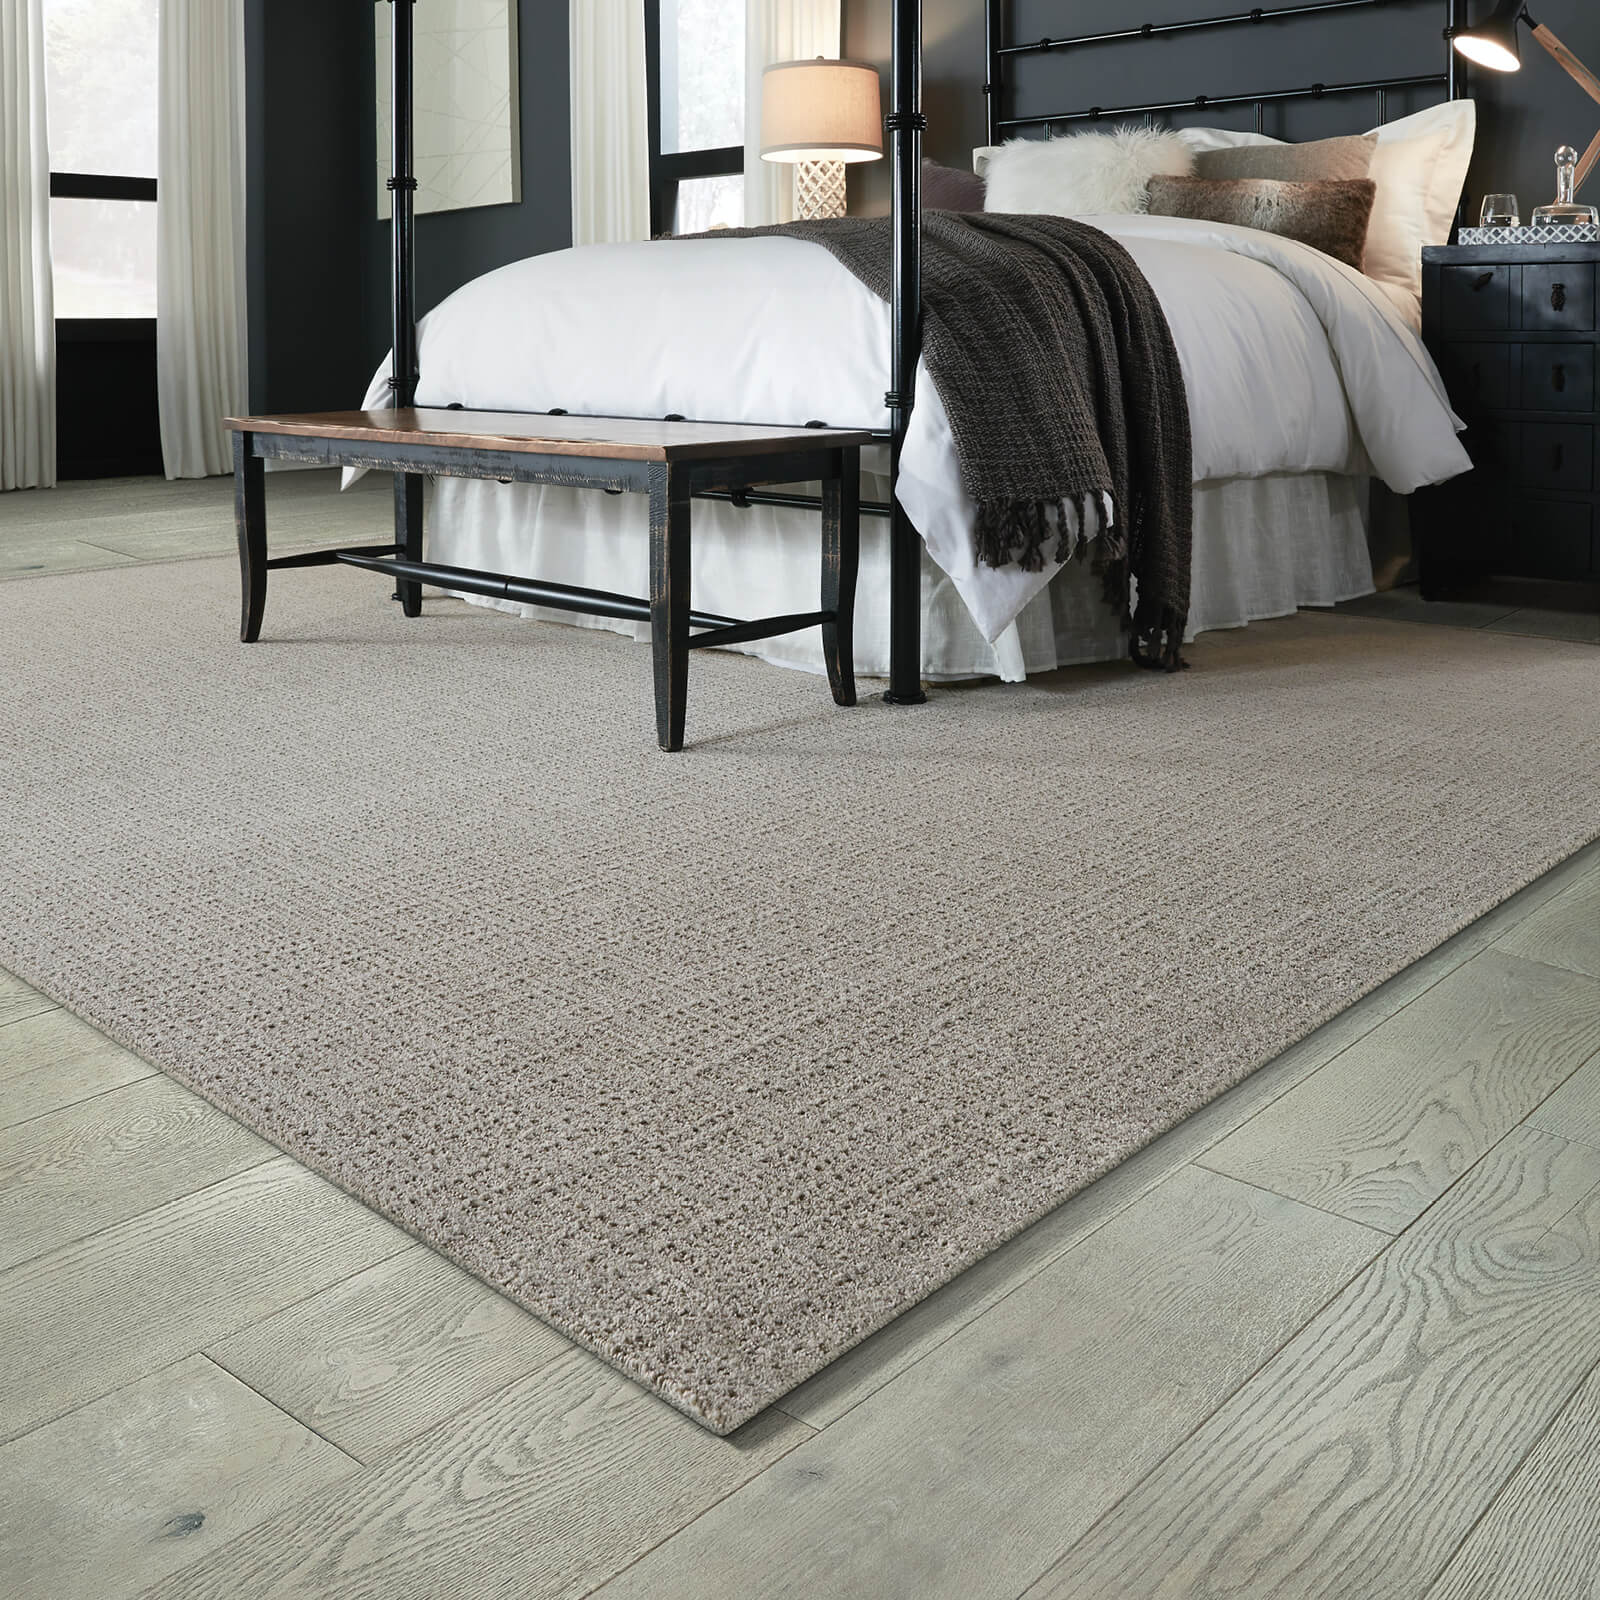 Kensington carpet in bedroom | McCool's Flooring